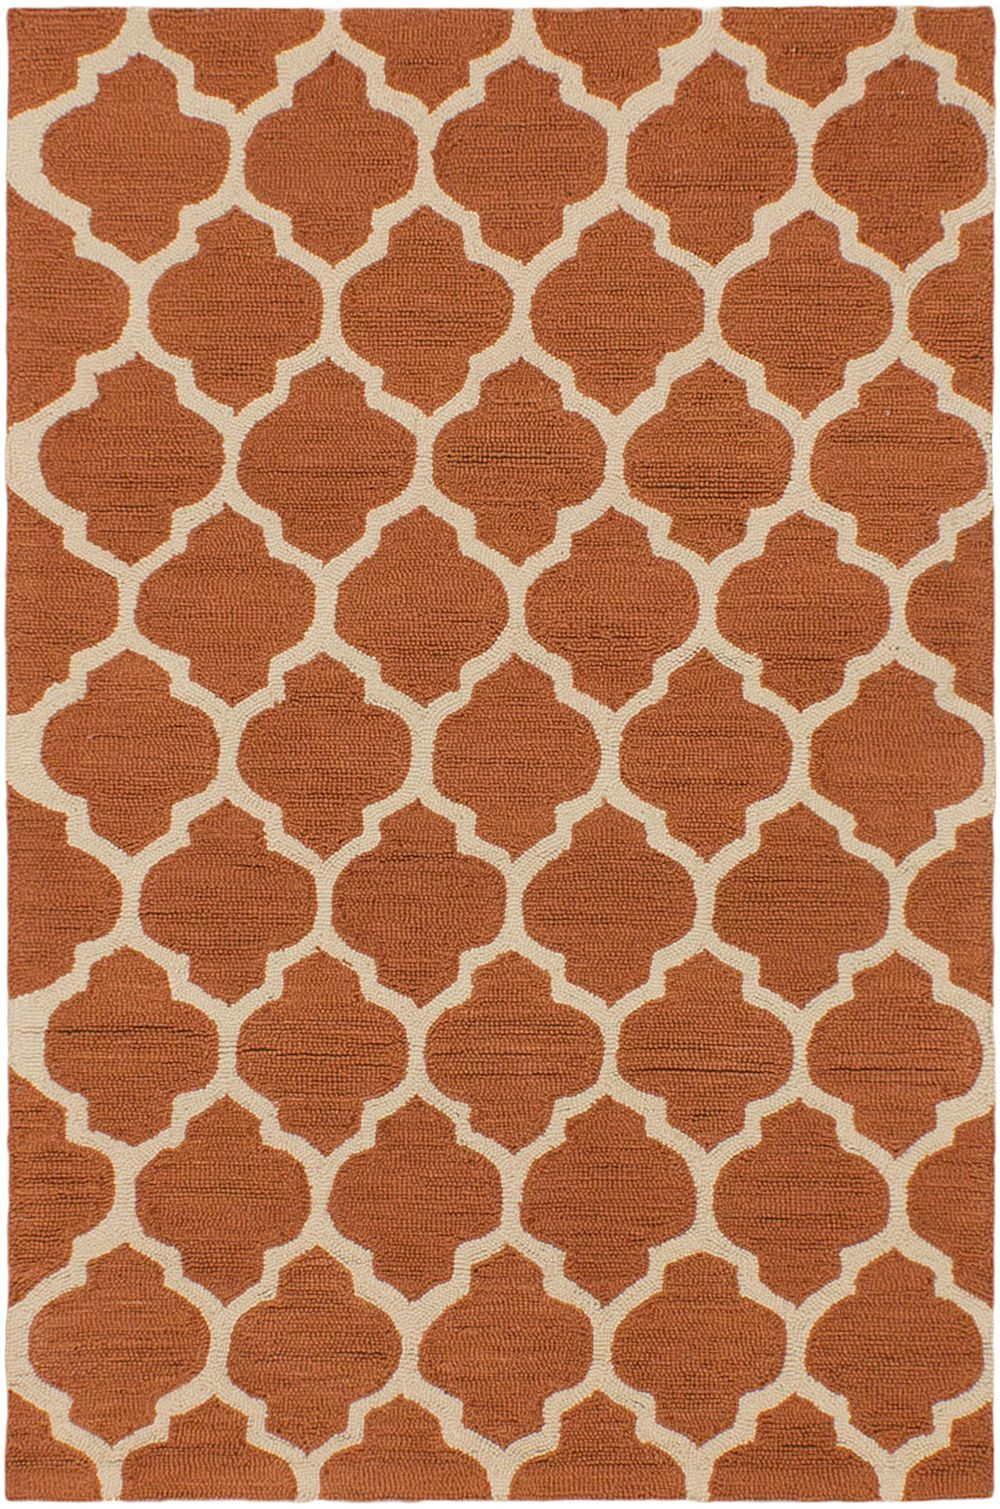 ecarpet gallery exeter contemporary area rug collection